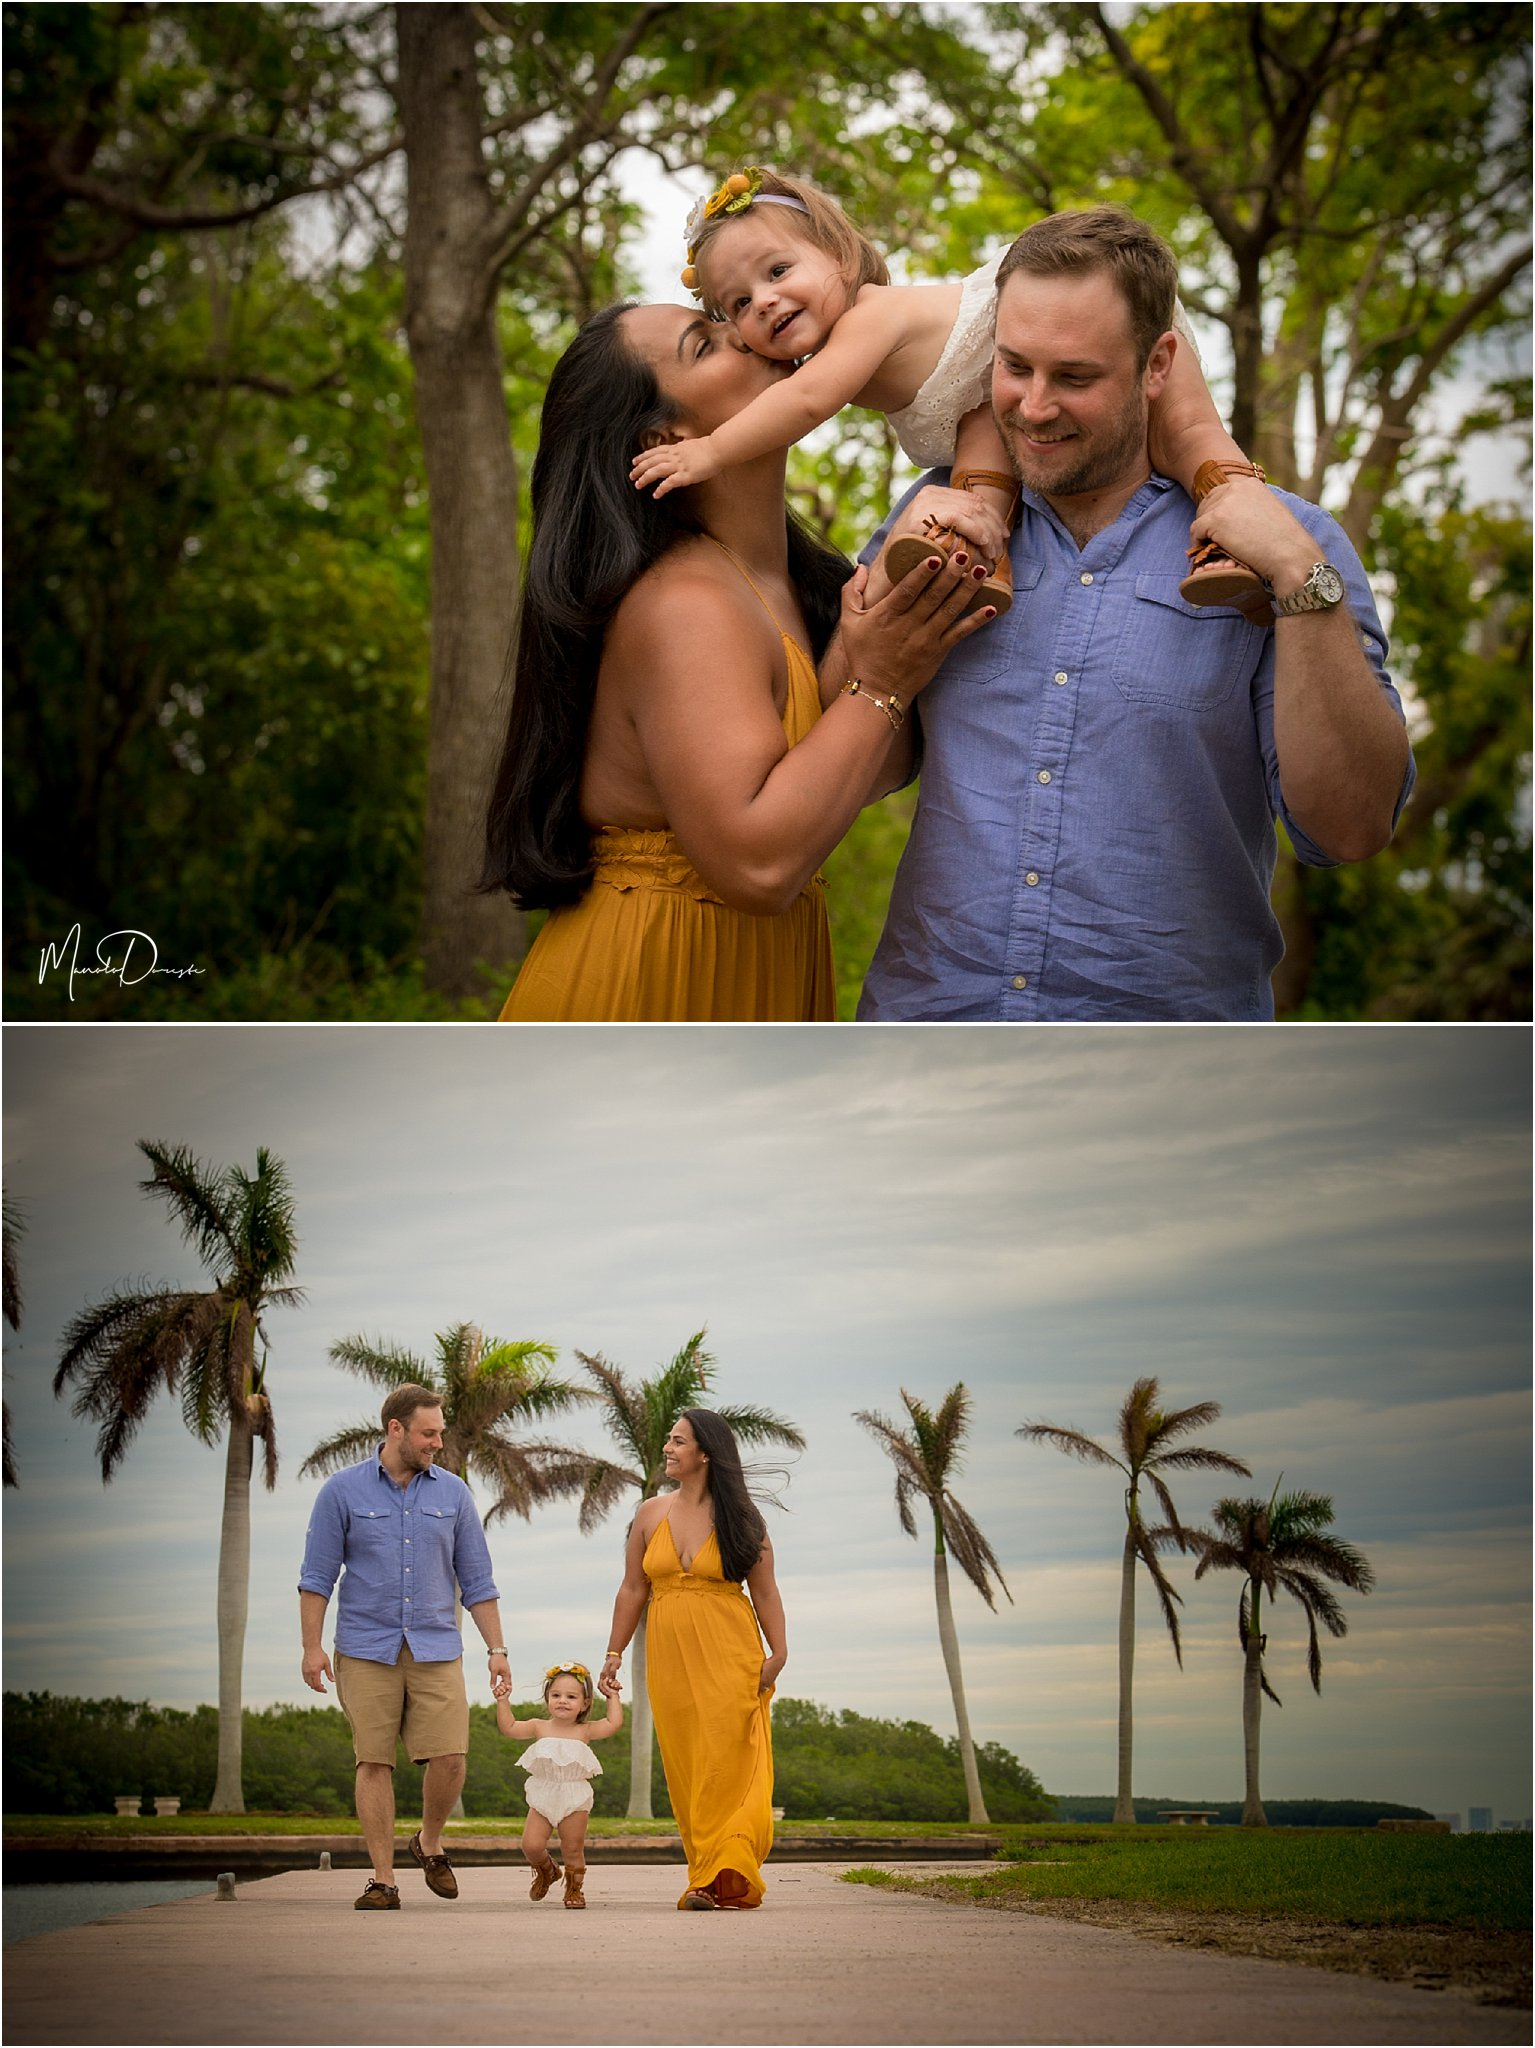 0139_ManoloDoreste_InFocusStudios_Wedding_Family_Photography_Miami_MiamiPhotographer.jpg